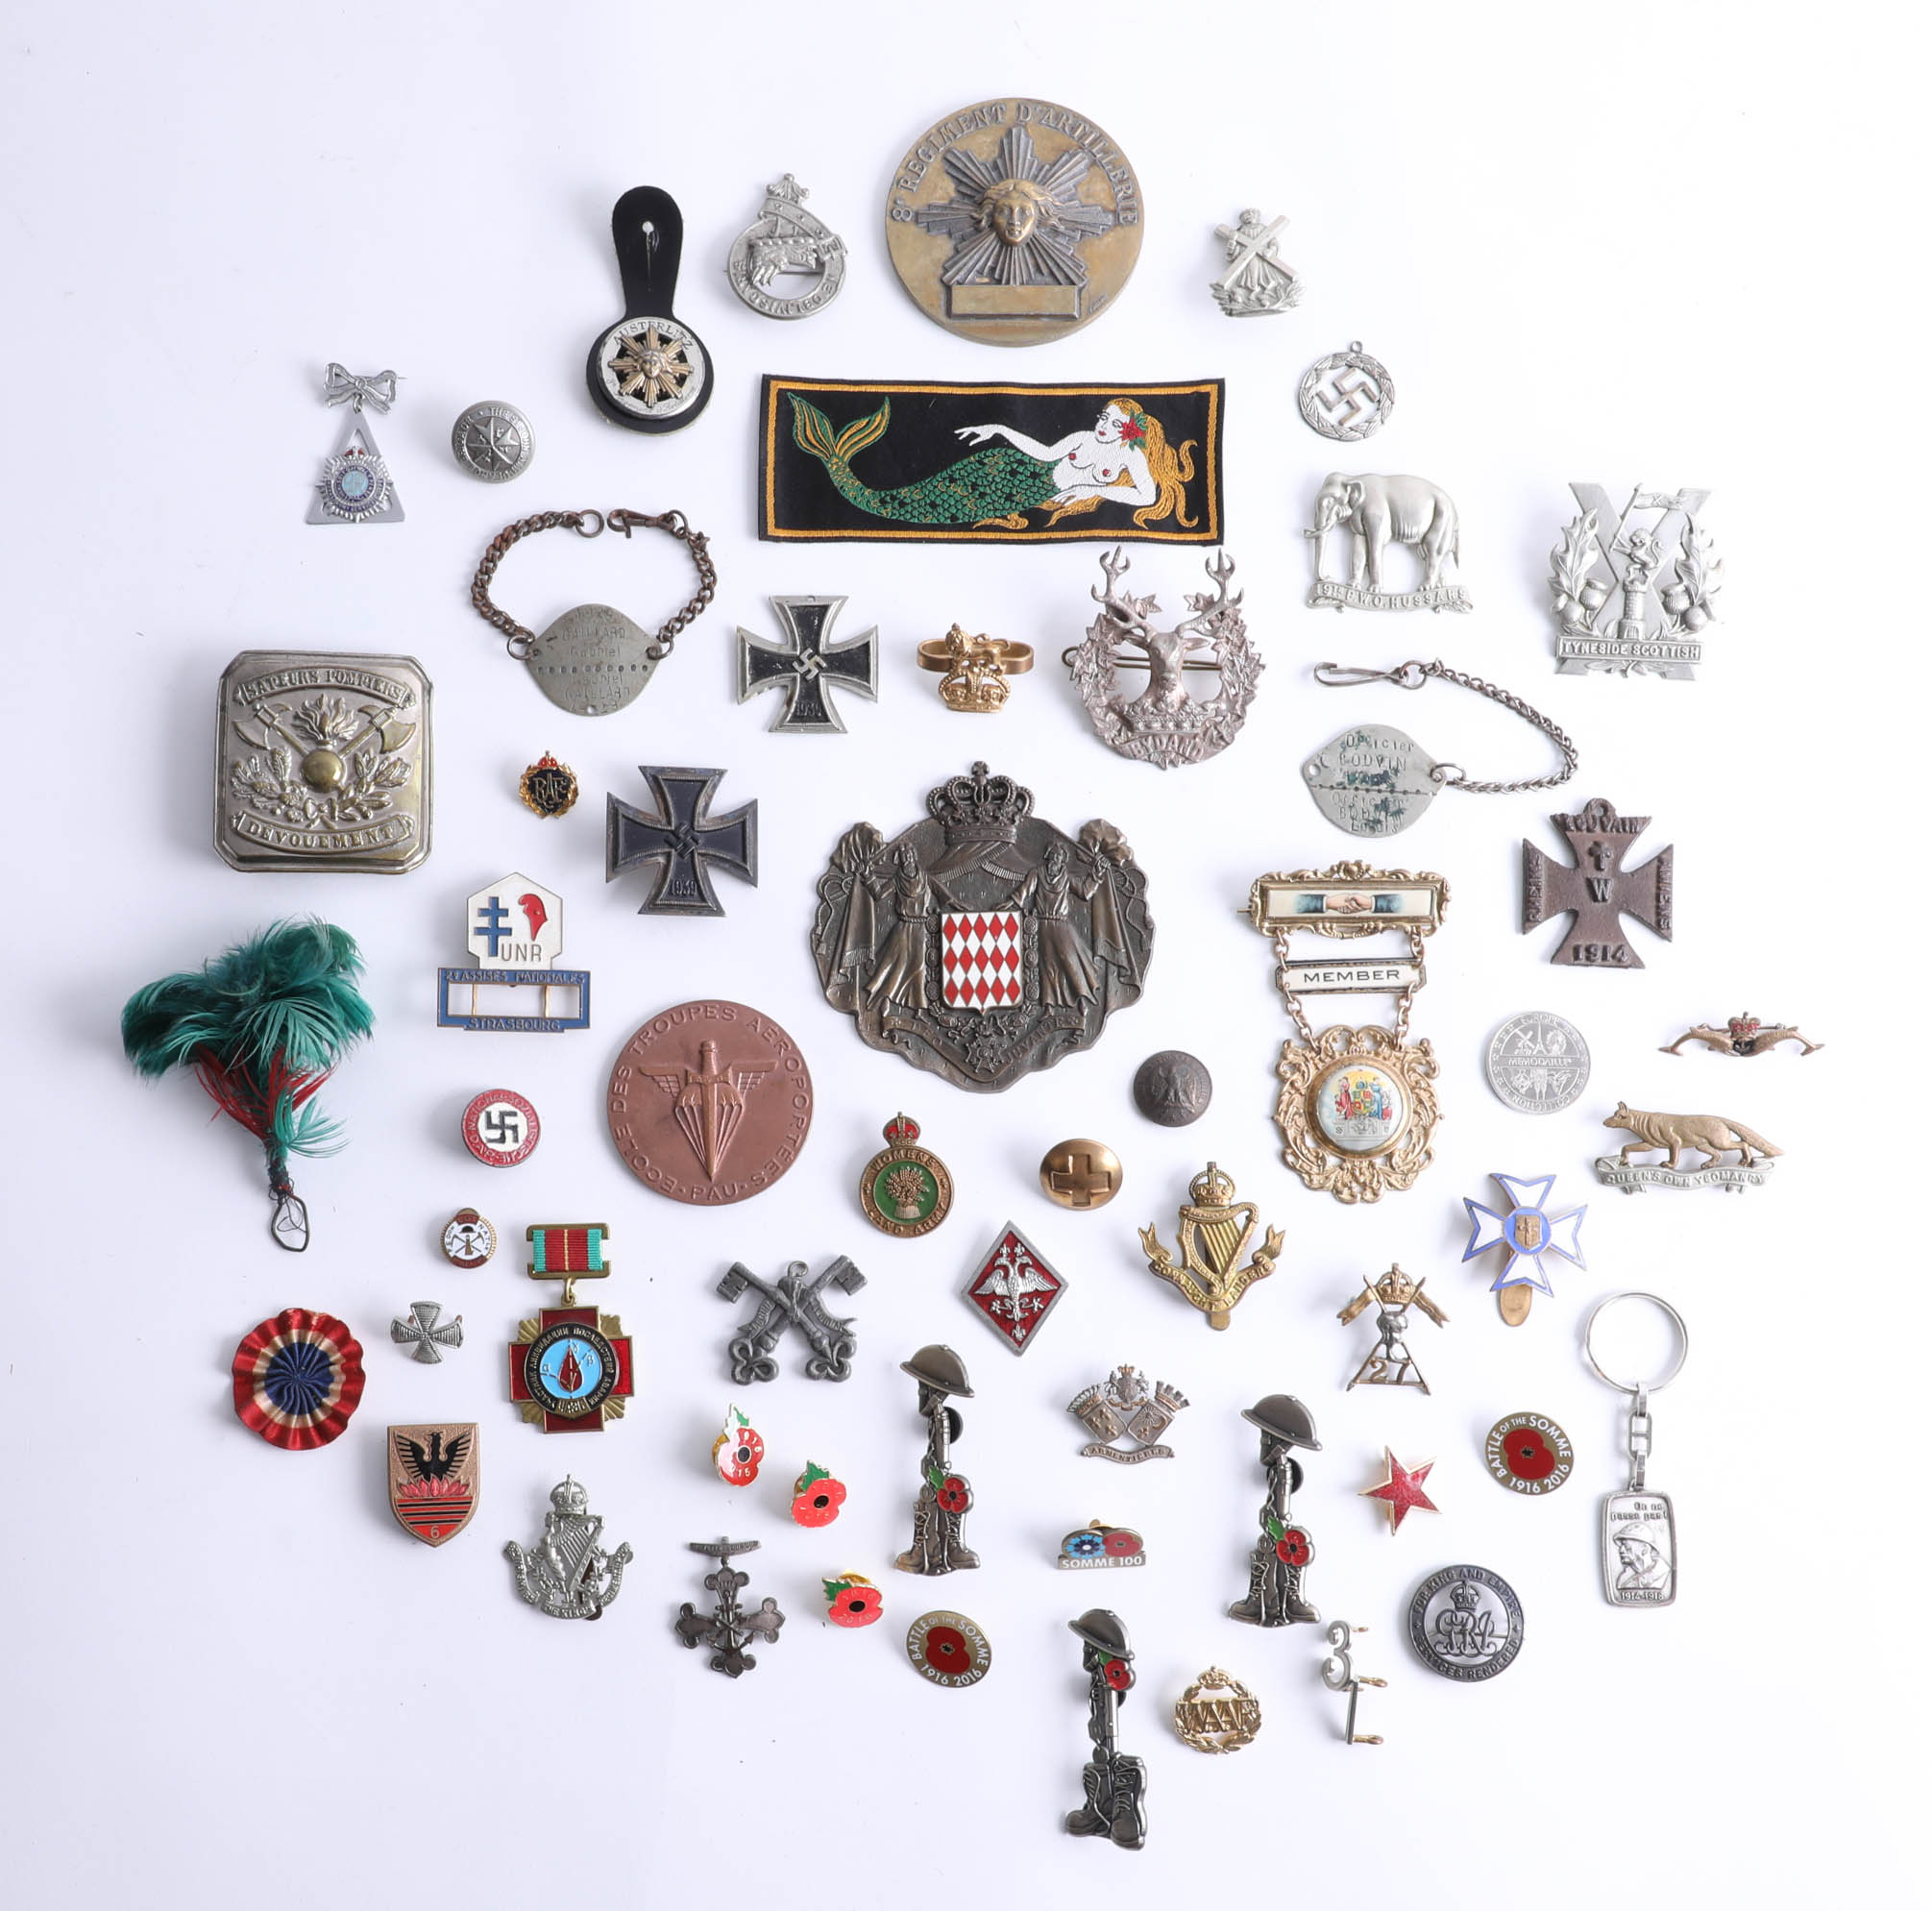 Lot 043 - A collection of assorted badges and objects, incl replicas, German iron crosses, medallions, replica